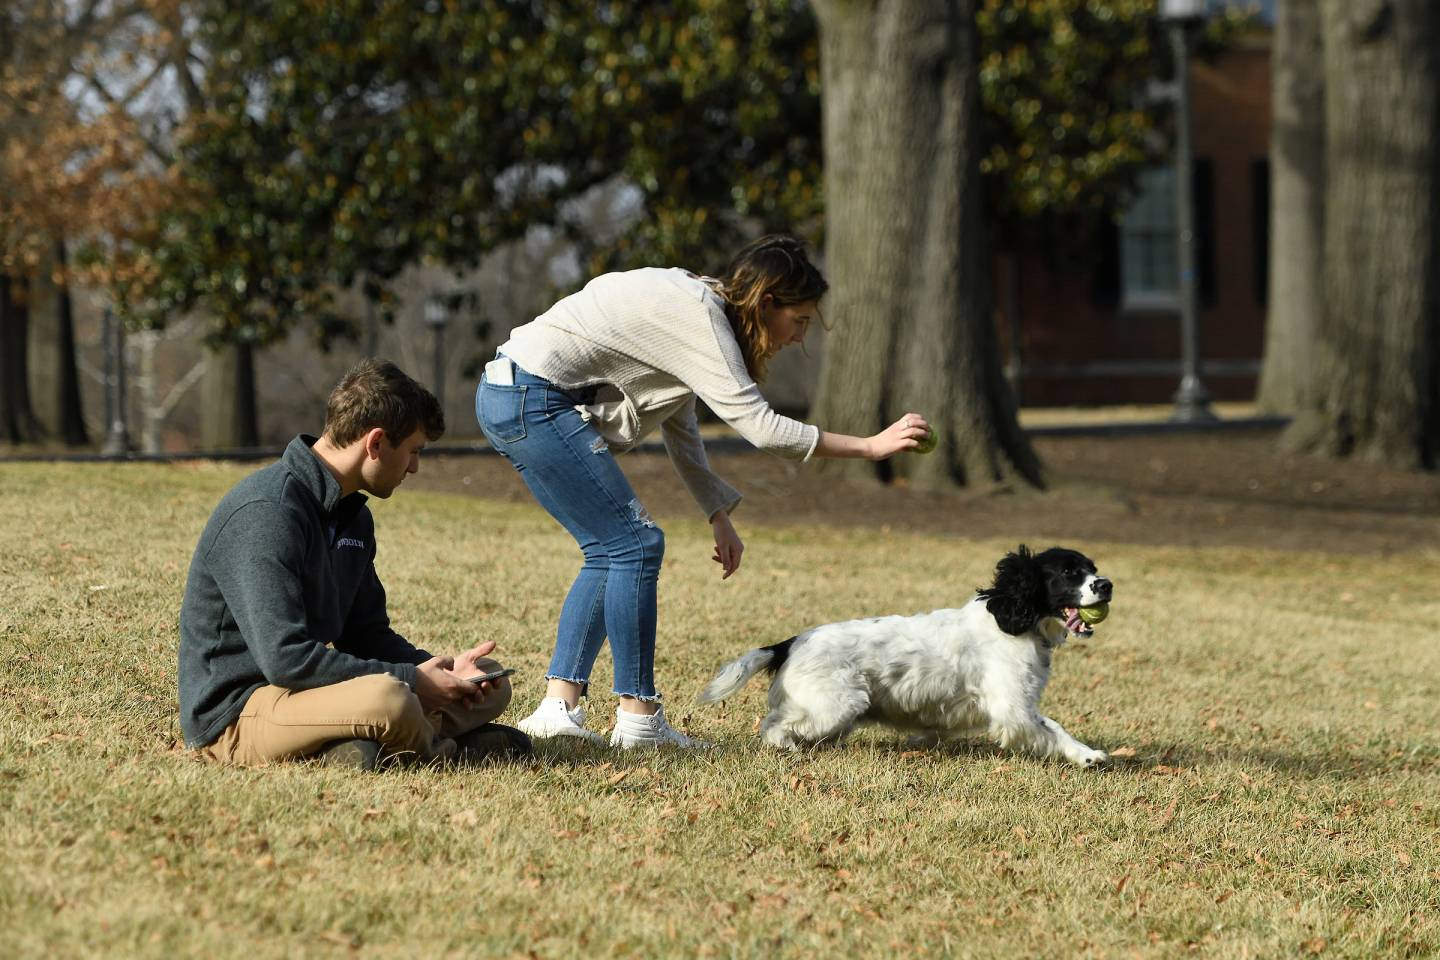 Two people play fetch with a dog